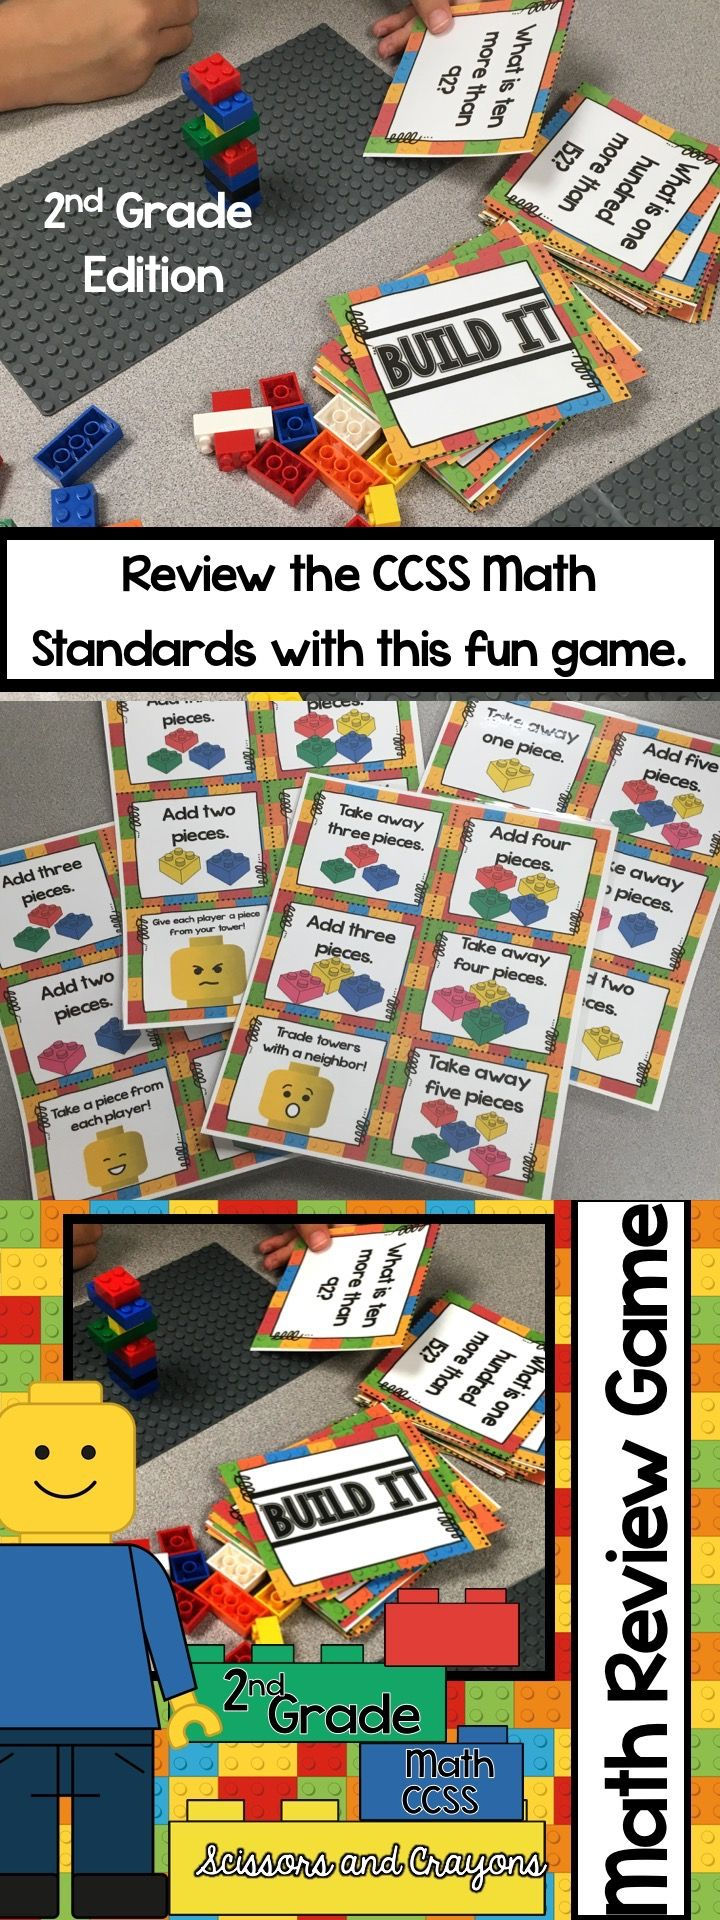 Common Core Math Task Card Second Grade Build It Game | Common cores ...